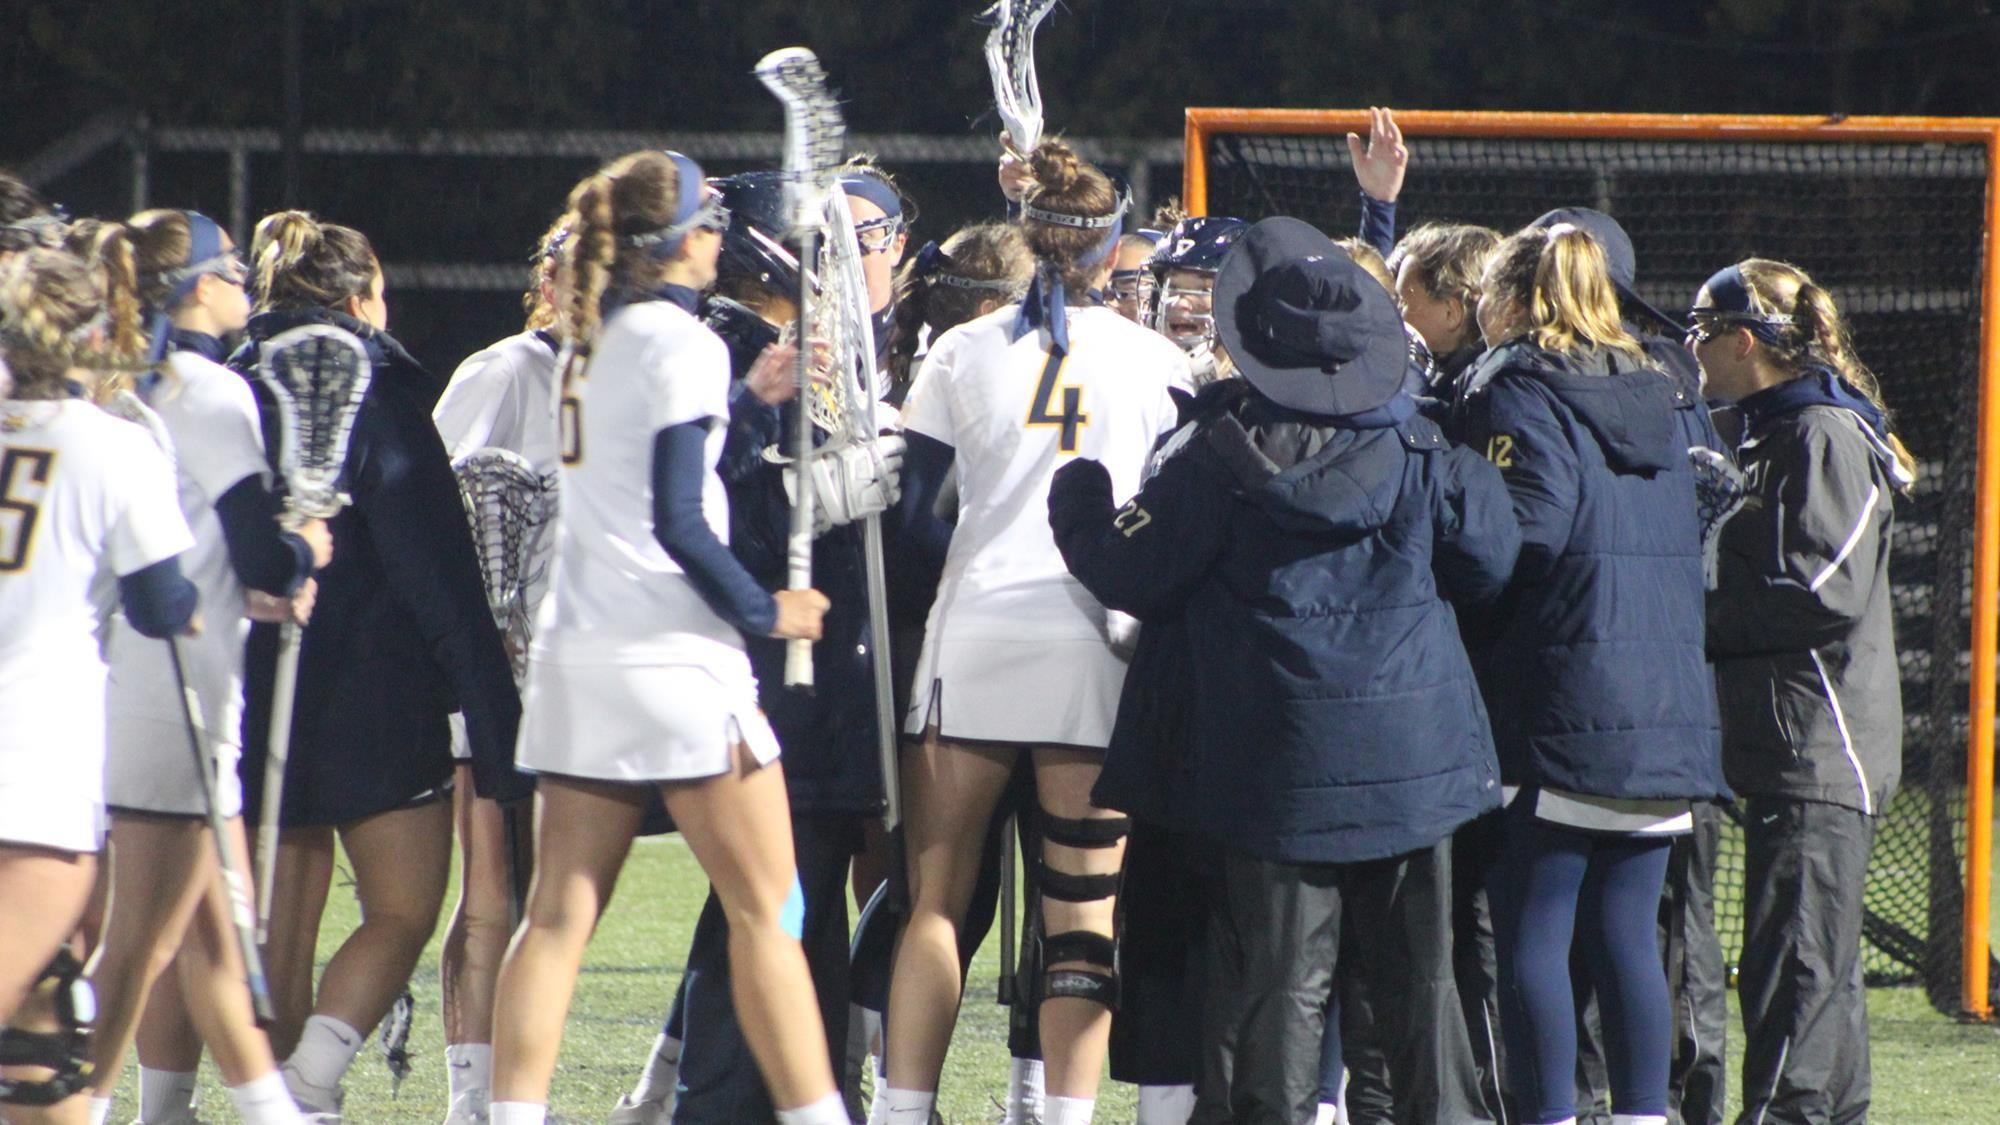 Quinnipiac women's lacrosse clinches first MAAC playoff berth